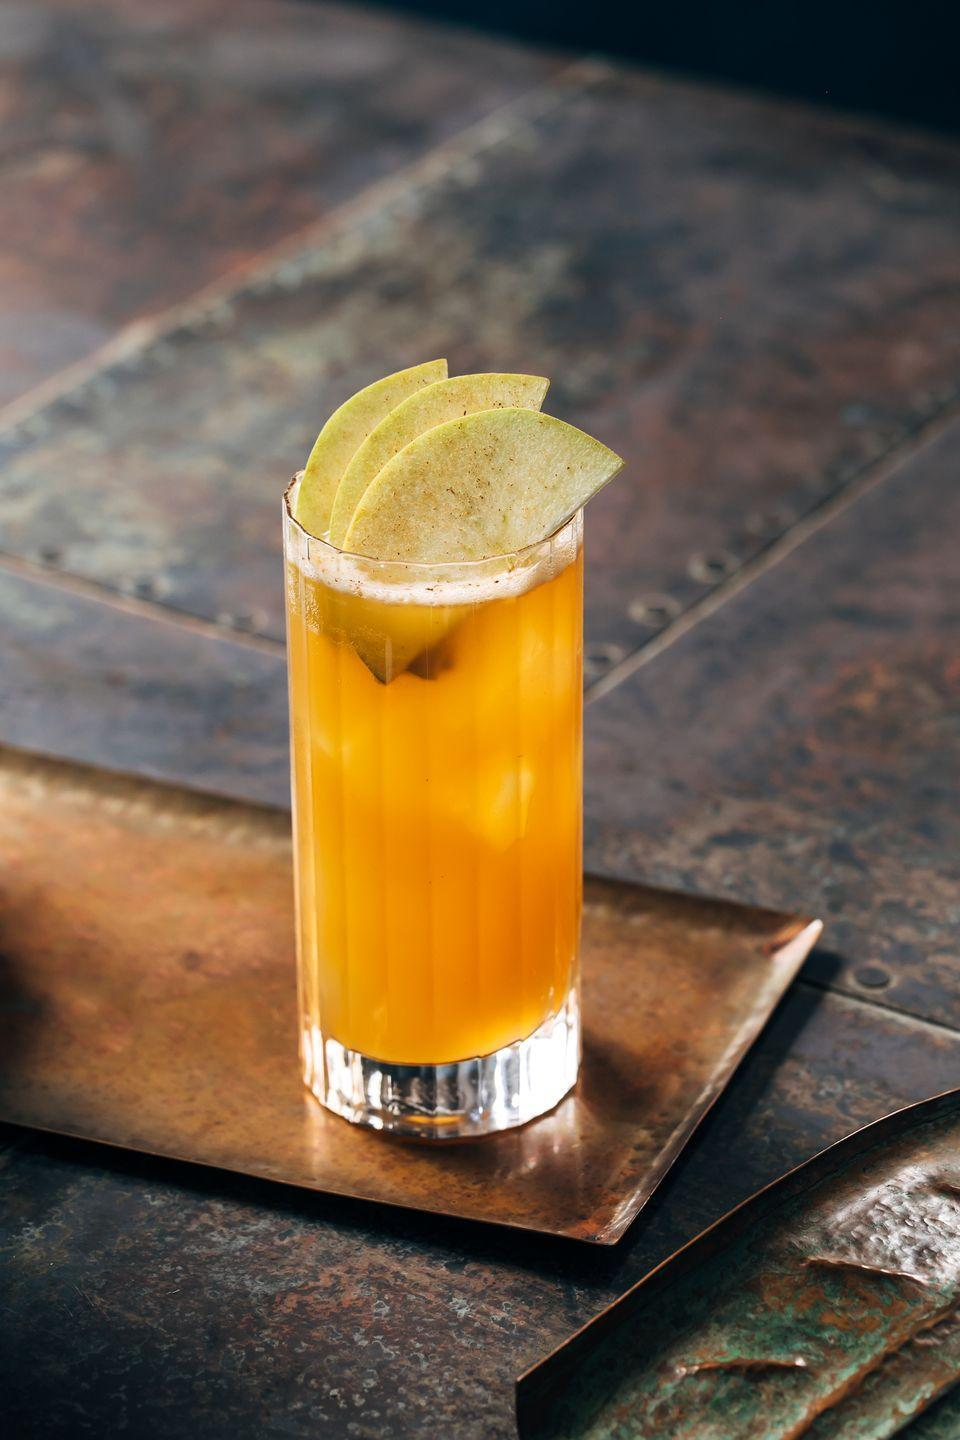 """<p>Even if you love your single malt neat, you just may change your mind when you sip this cinnamon-y, pumpkin-y libation. </p><p><strong>Ingredients:</strong></p><p>1.5 oz <a href=""""https://drizly.com/liquor/whiskey/single-malt-whiskey/the-singleton-of-glendullan-single-malt-12-year/p6160"""" rel=""""nofollow noopener"""" target=""""_blank"""" data-ylk=""""slk:The Singleton of Glendullan 12 Year Old"""" class=""""link rapid-noclick-resp"""">The Singleton of Glendullan 12 Year Old</a><br>.5 oz Fresh Lemon Juice<br>1 oz Apple cider<br>.25 oz Cinnamon syrup <br>1 bar spoon Pumpkin butter</p><p> <strong>Directions:</strong></p><p>Add all ingredients into a shaker. Add ice and shake until chilled</p>"""